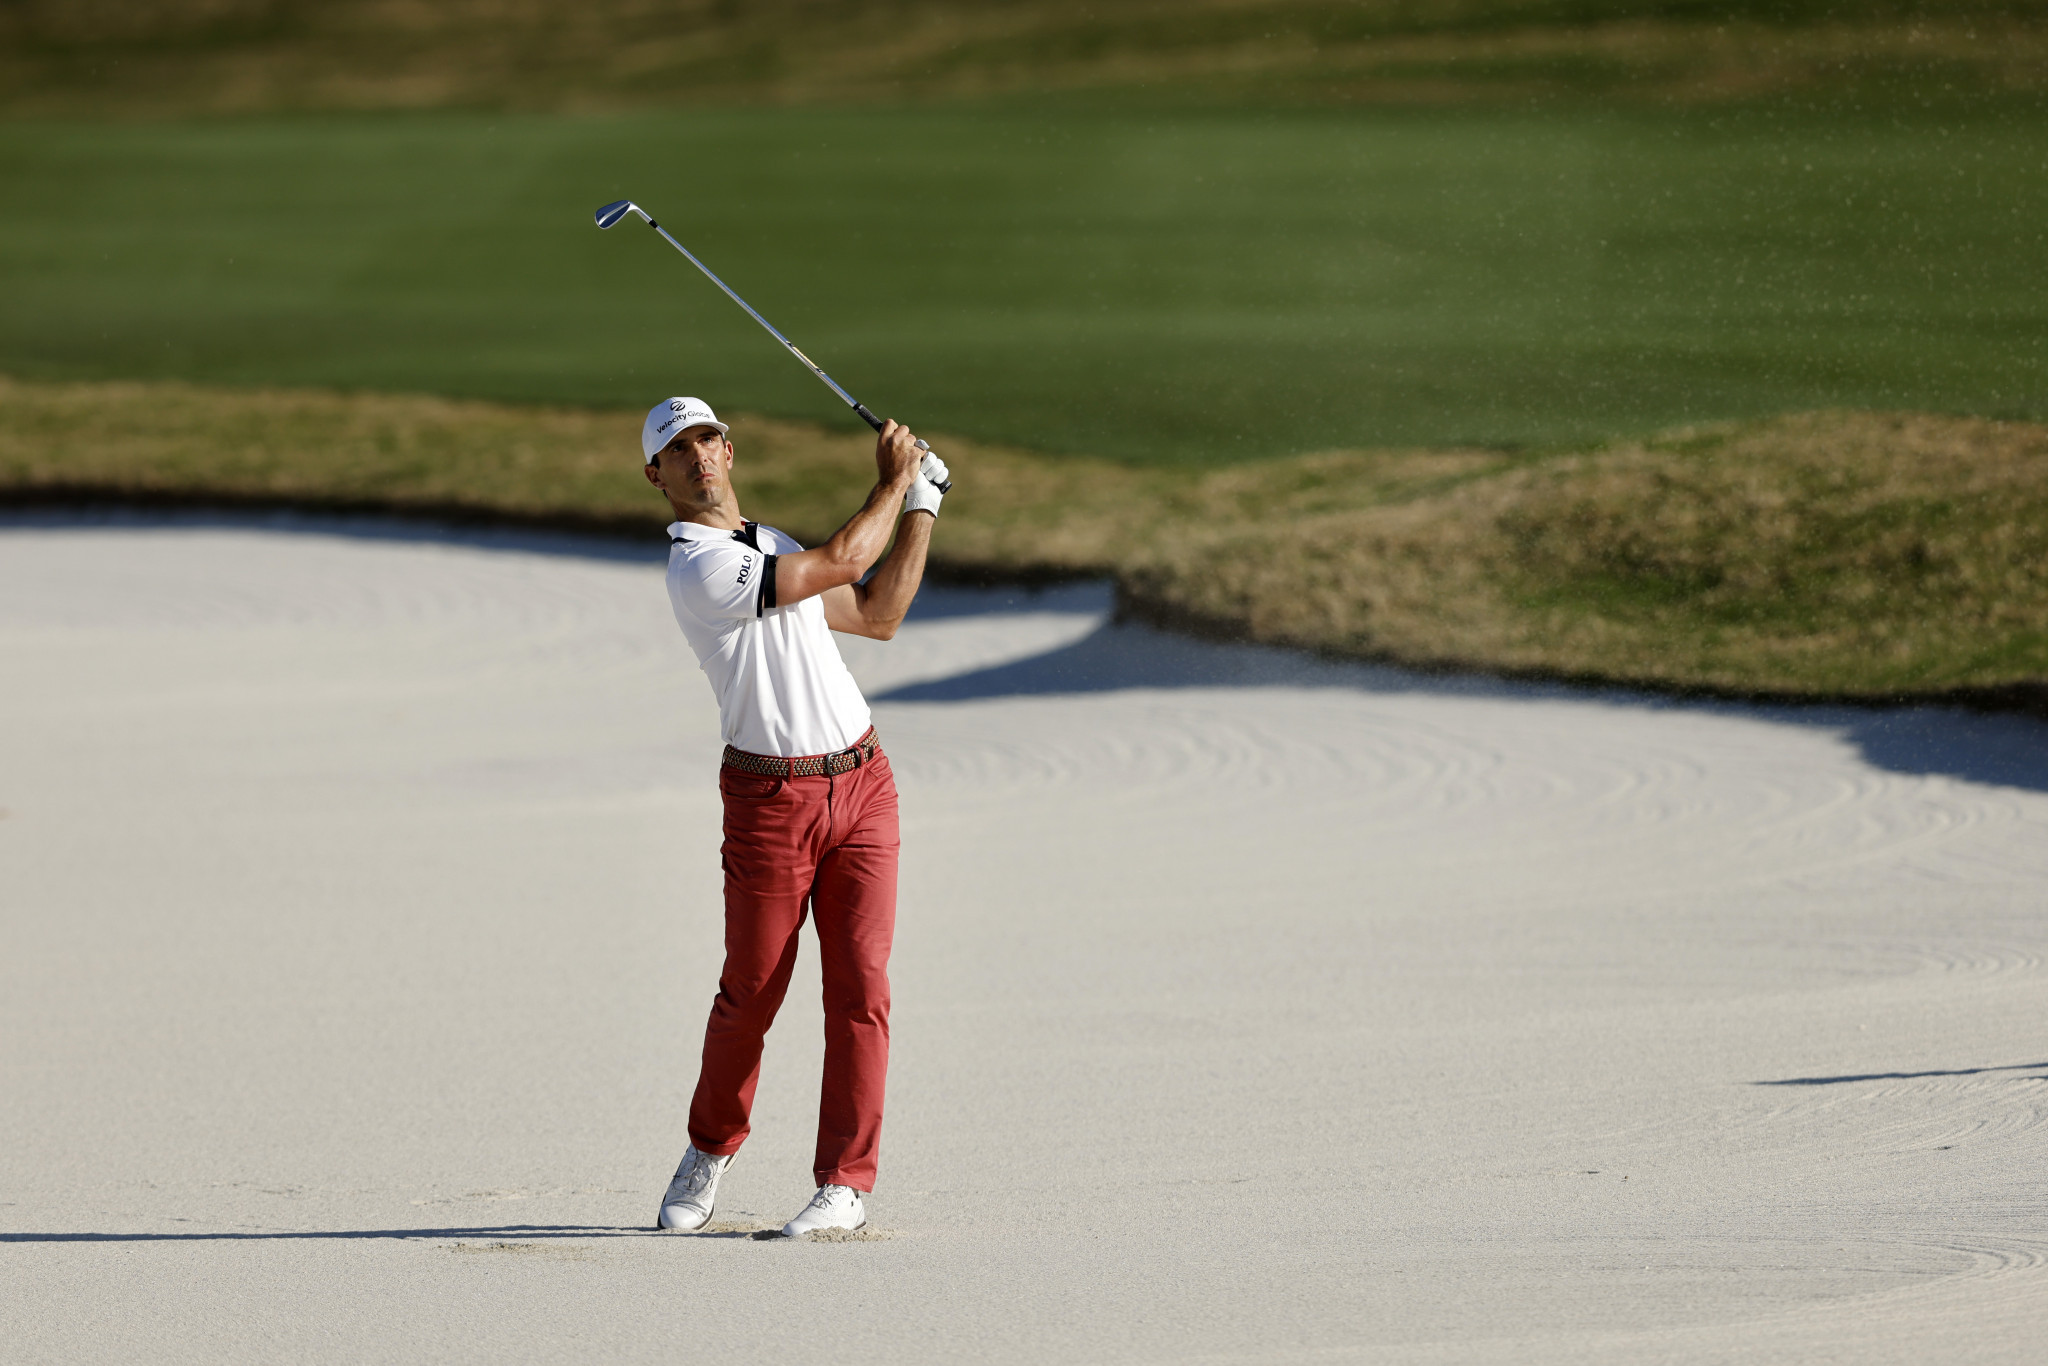 Horschel beats Scheffler in tight WGC-Match Play final